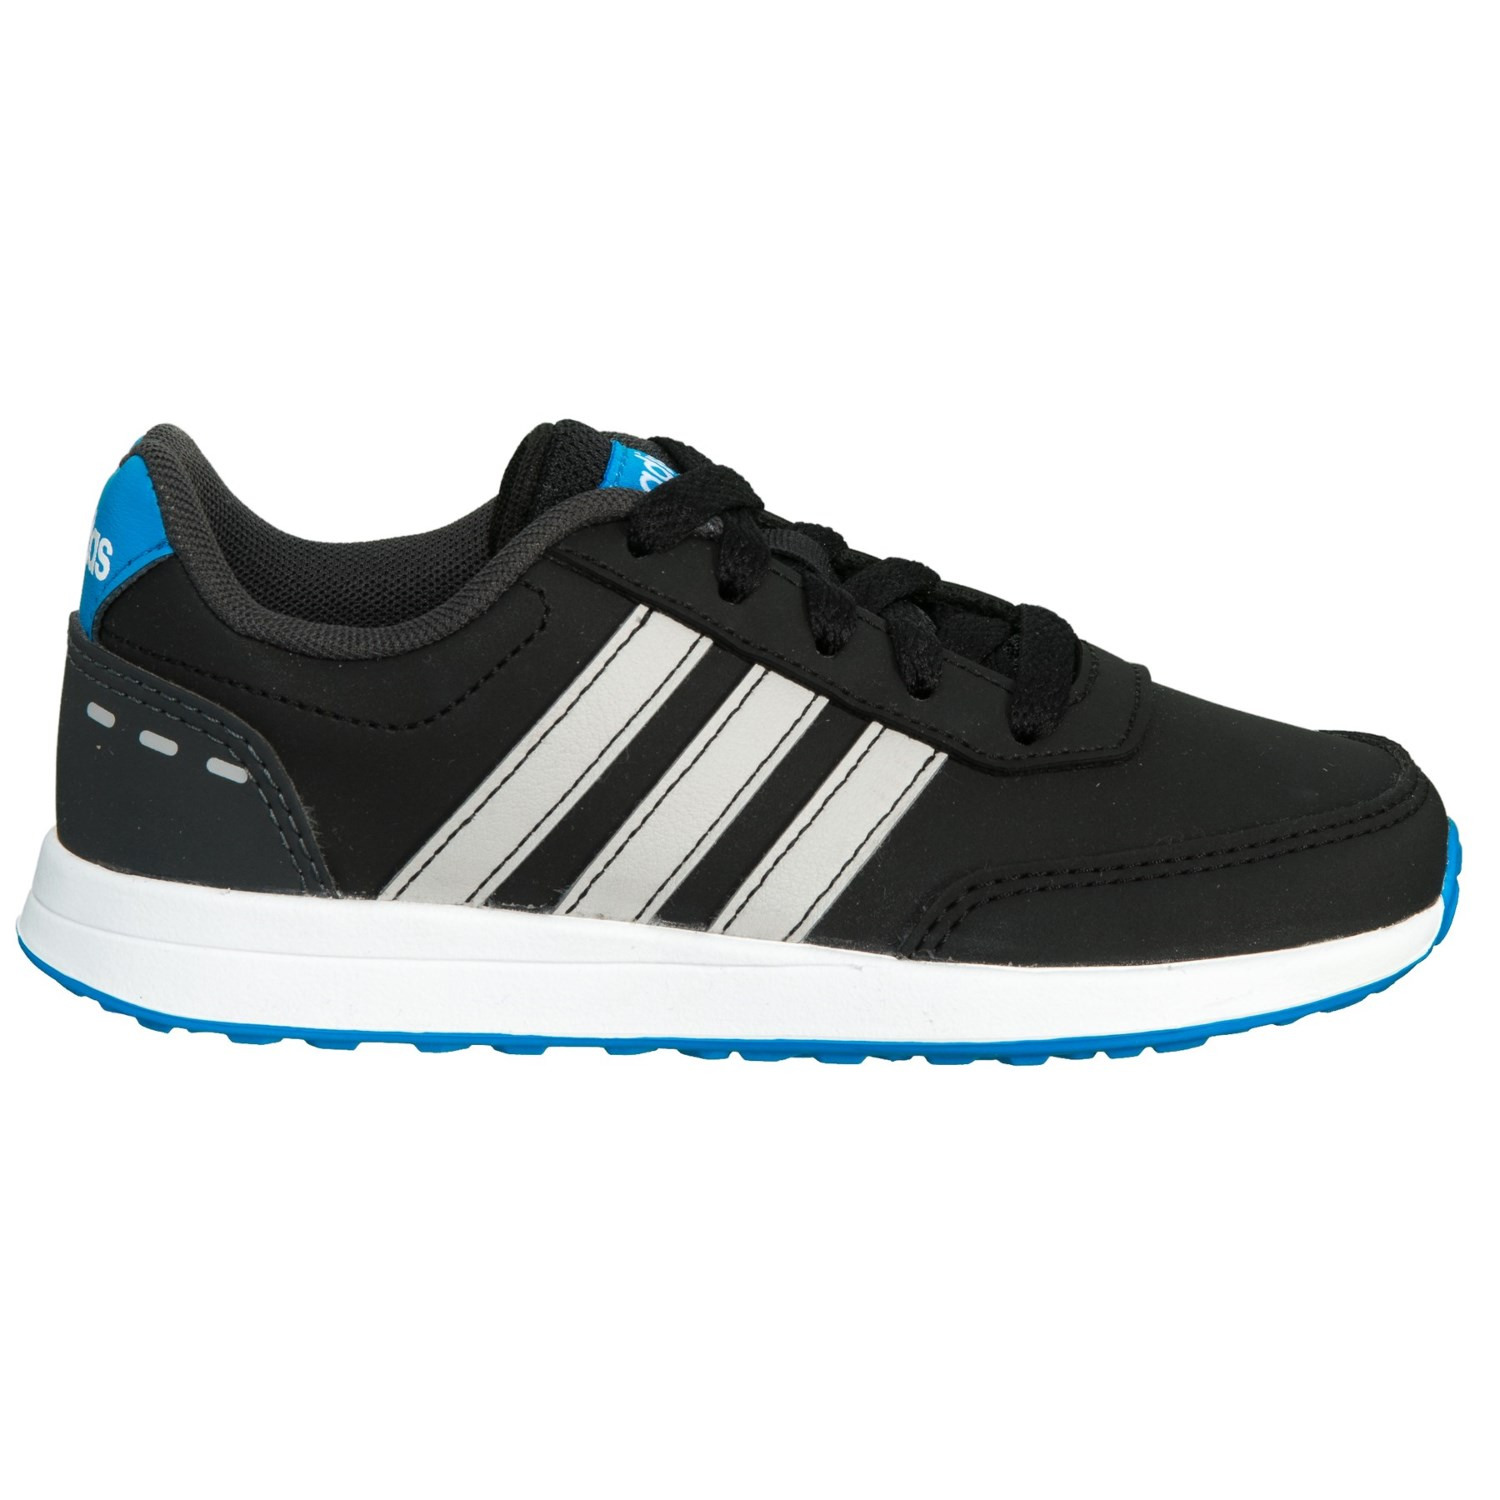 innovative design ec7e3 3aa68 adidas VS Switch 2 Shoes (For Little Boys)